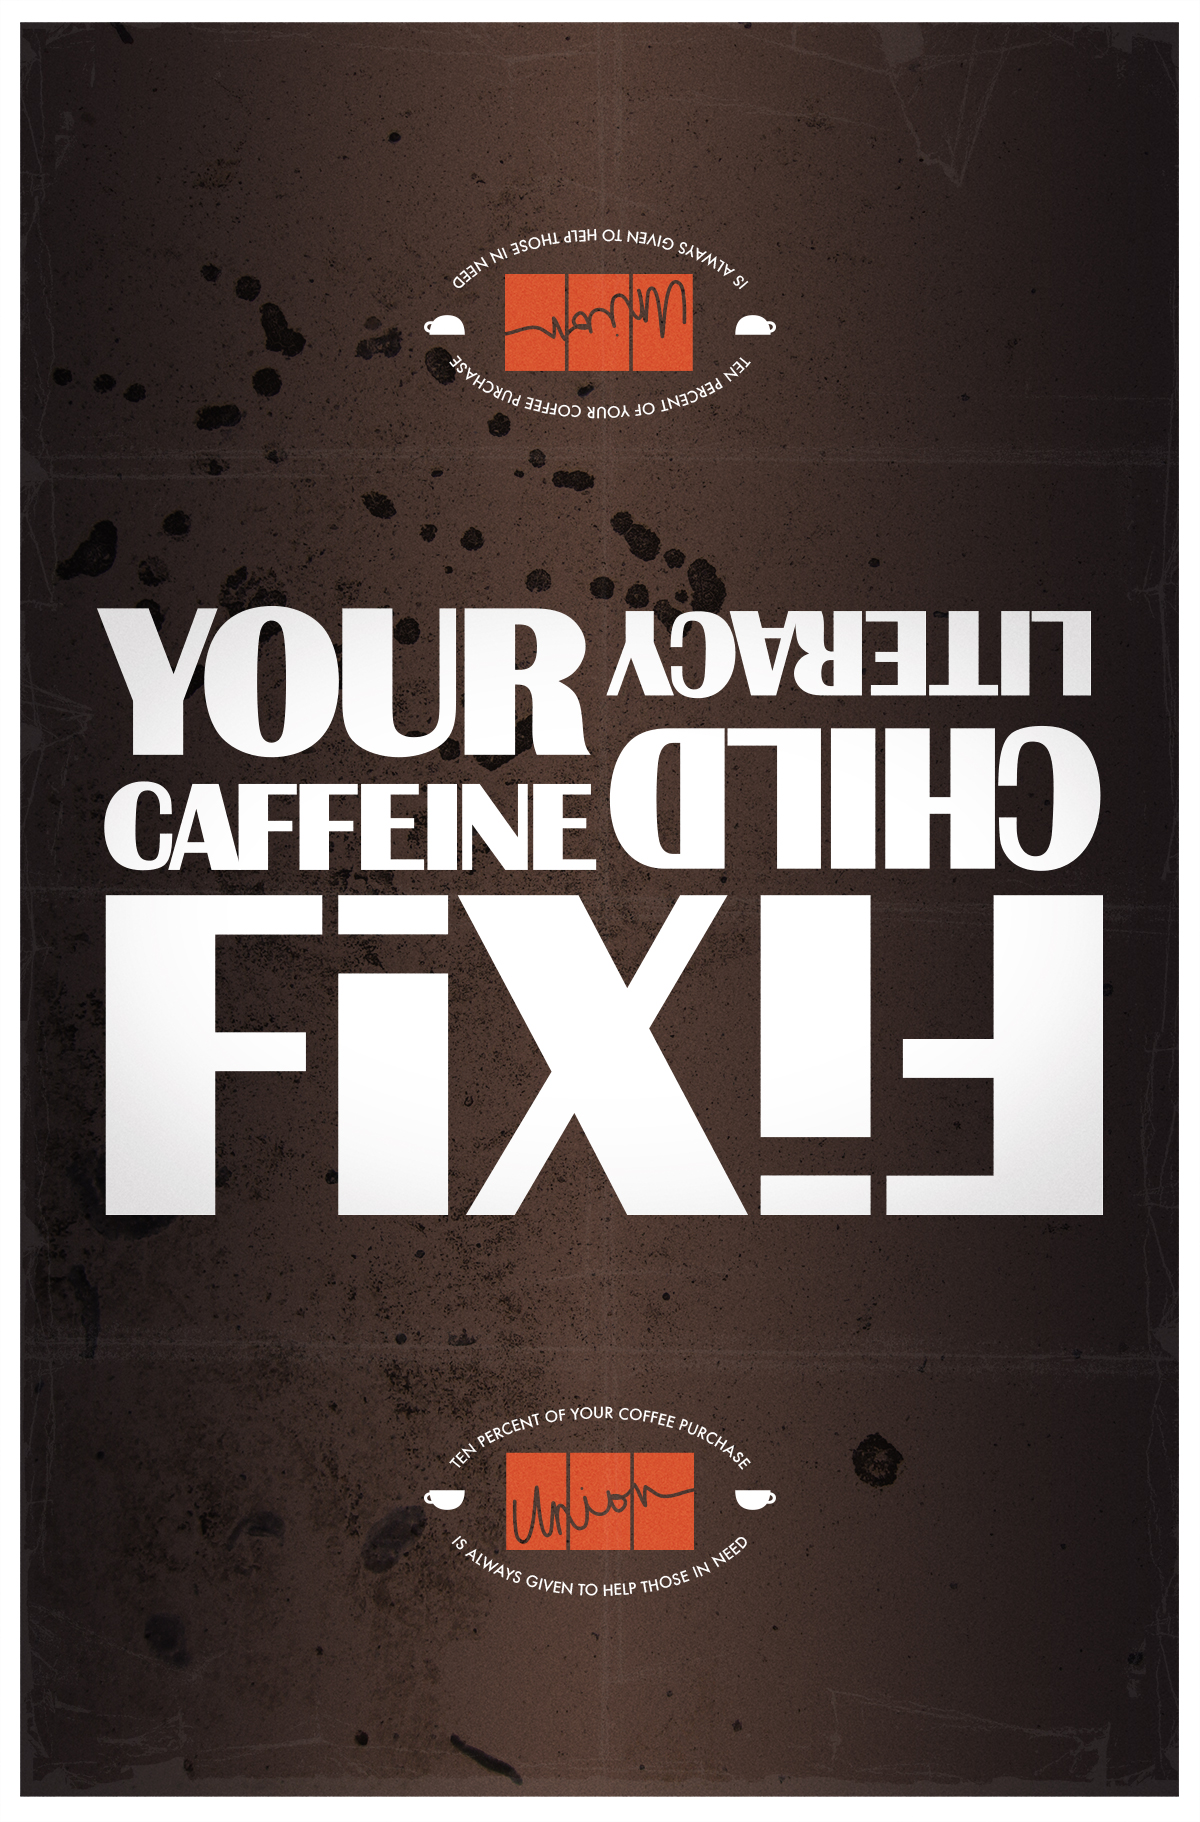 Union Coffee Poster for Child Literacy - Reversible: Your Caffeine Fix/Fix Child Literacy by Tidal Wave Marketing